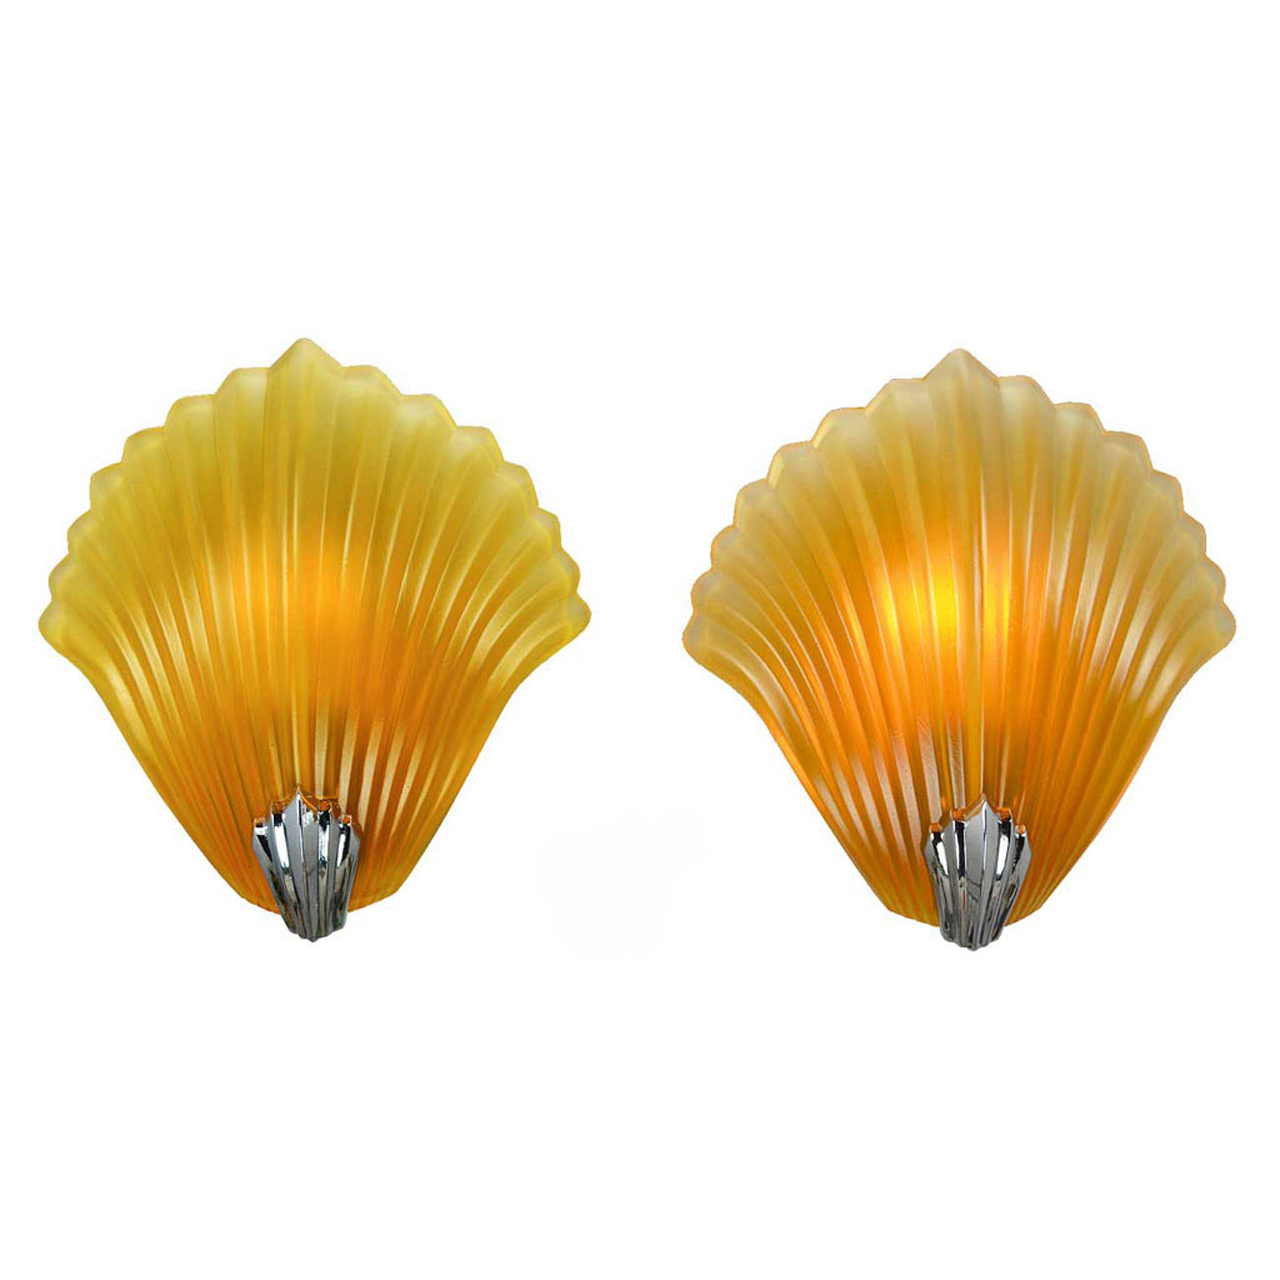 Vintage French Art Deco Shell Motif Wall Sconces Seashell Clamshell ...